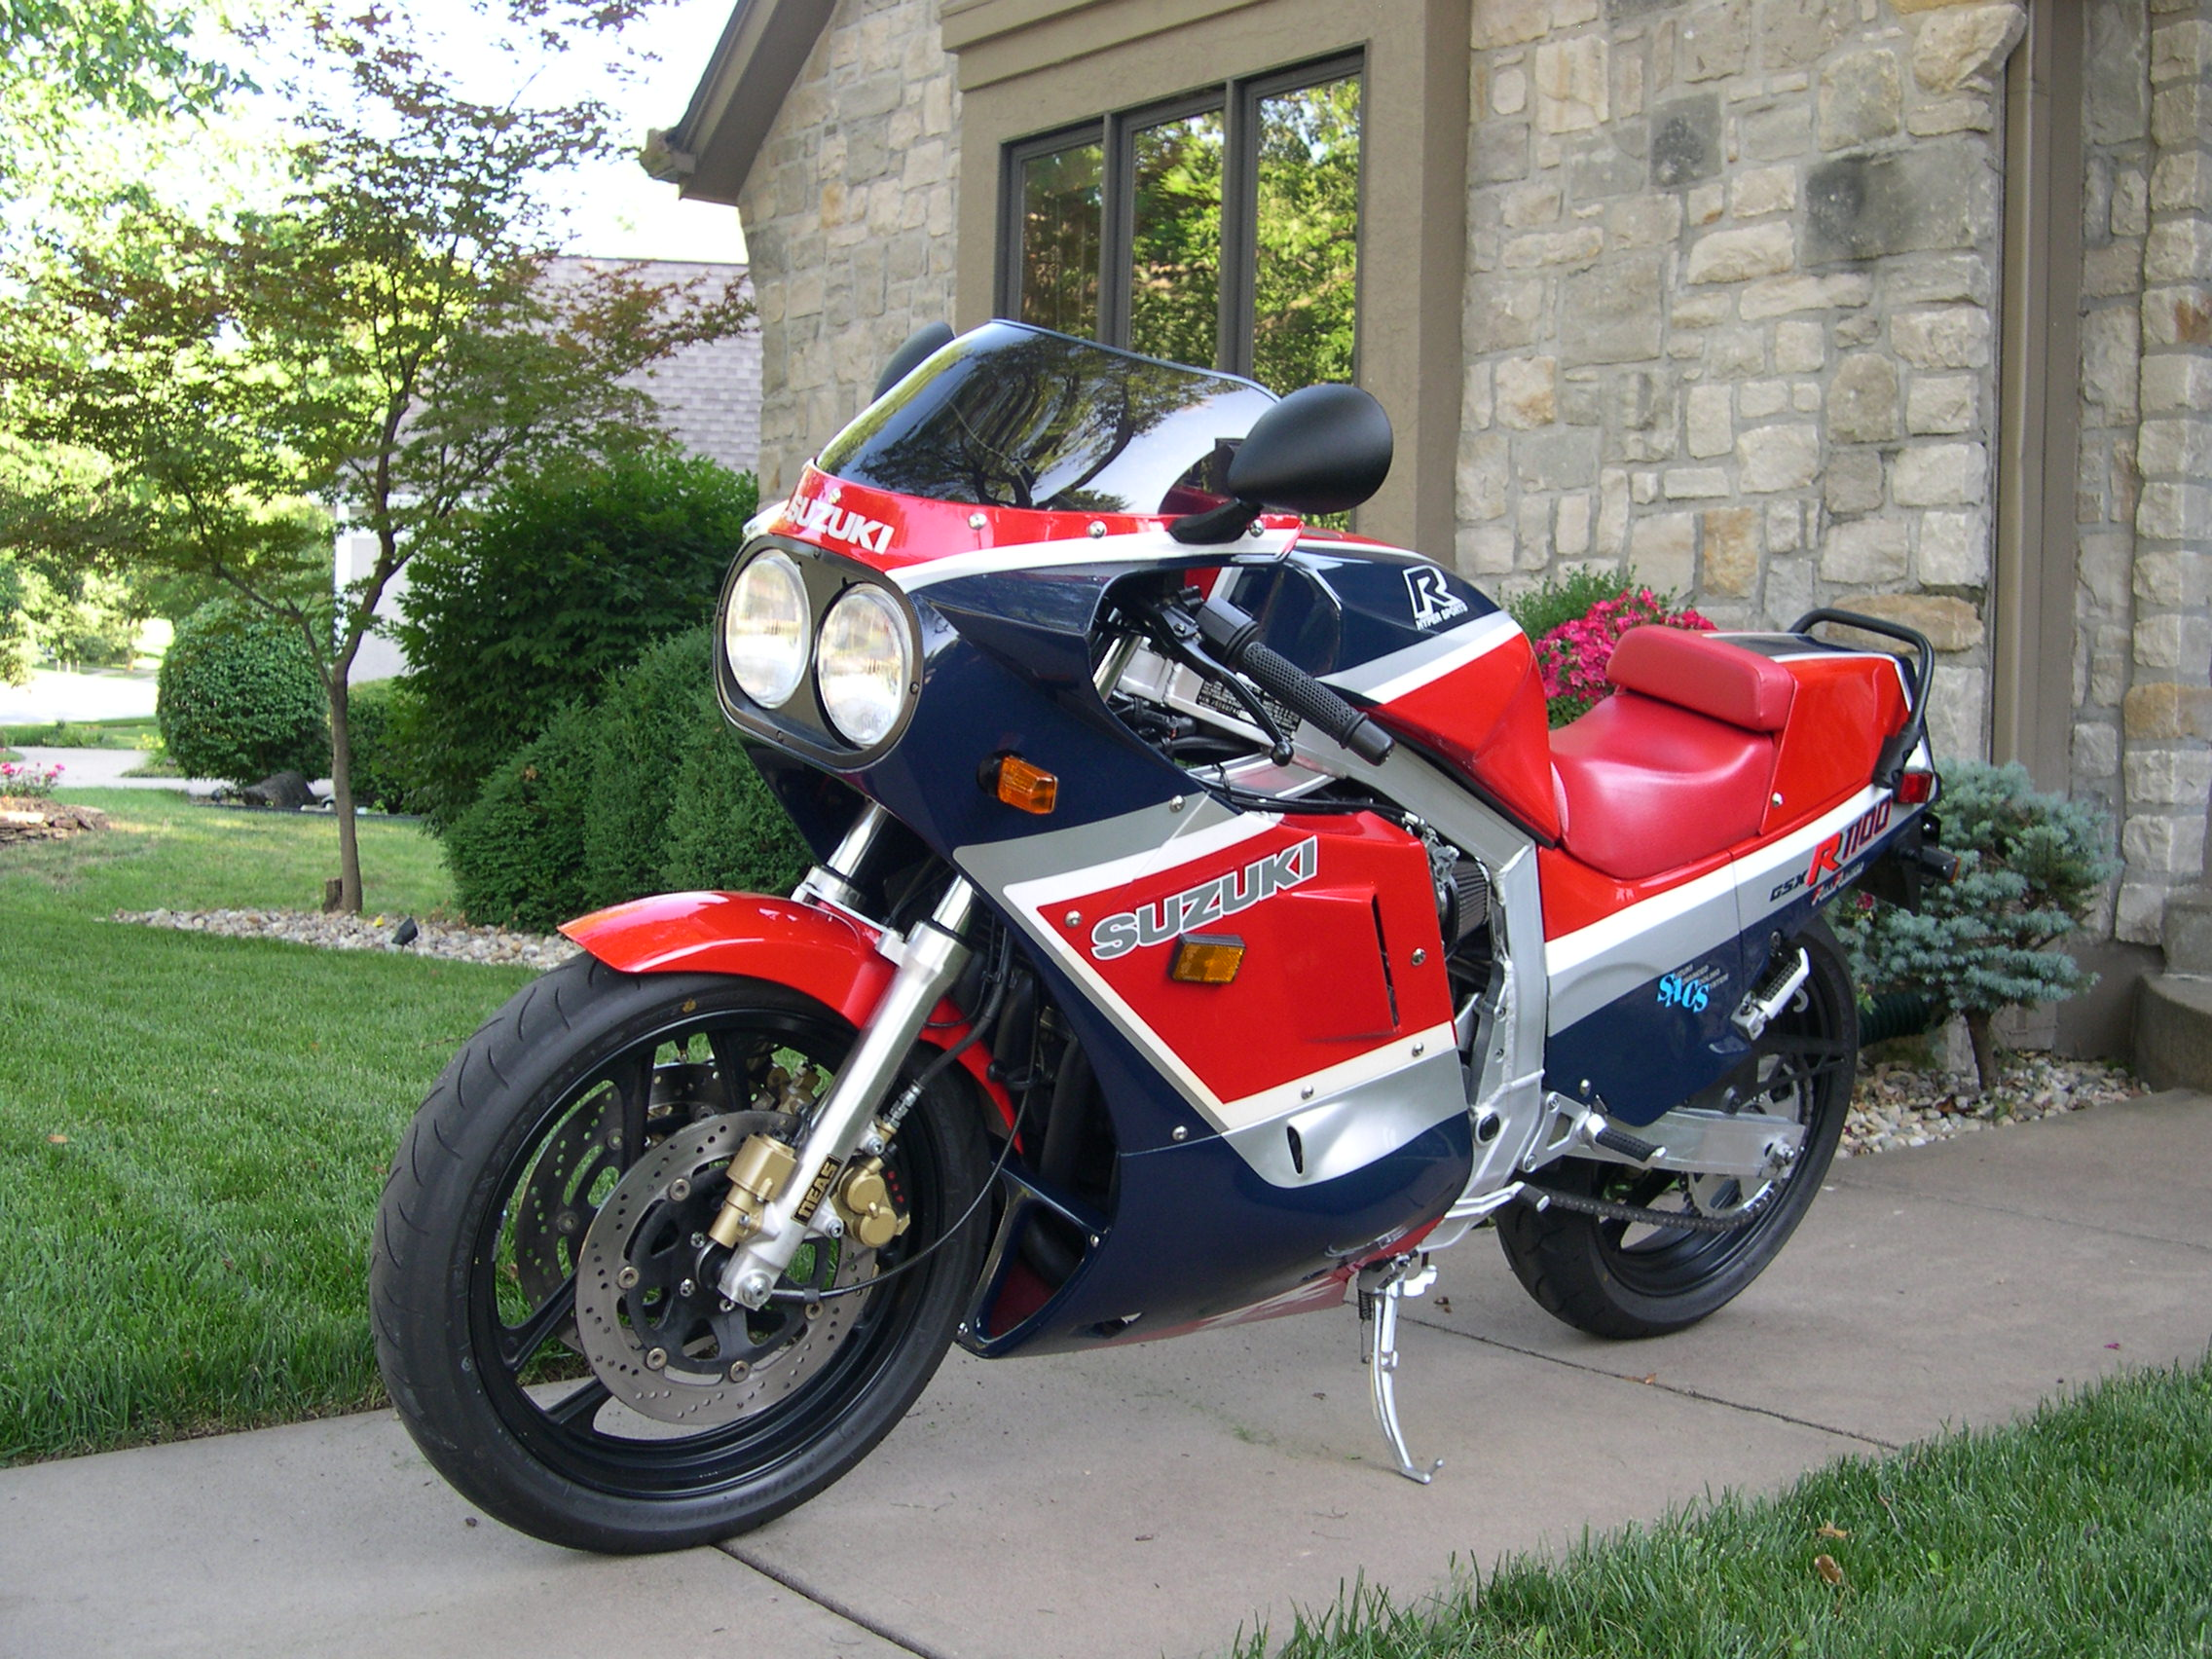 1988 suzuki gsx r 1100 pics specs and information. Black Bedroom Furniture Sets. Home Design Ideas